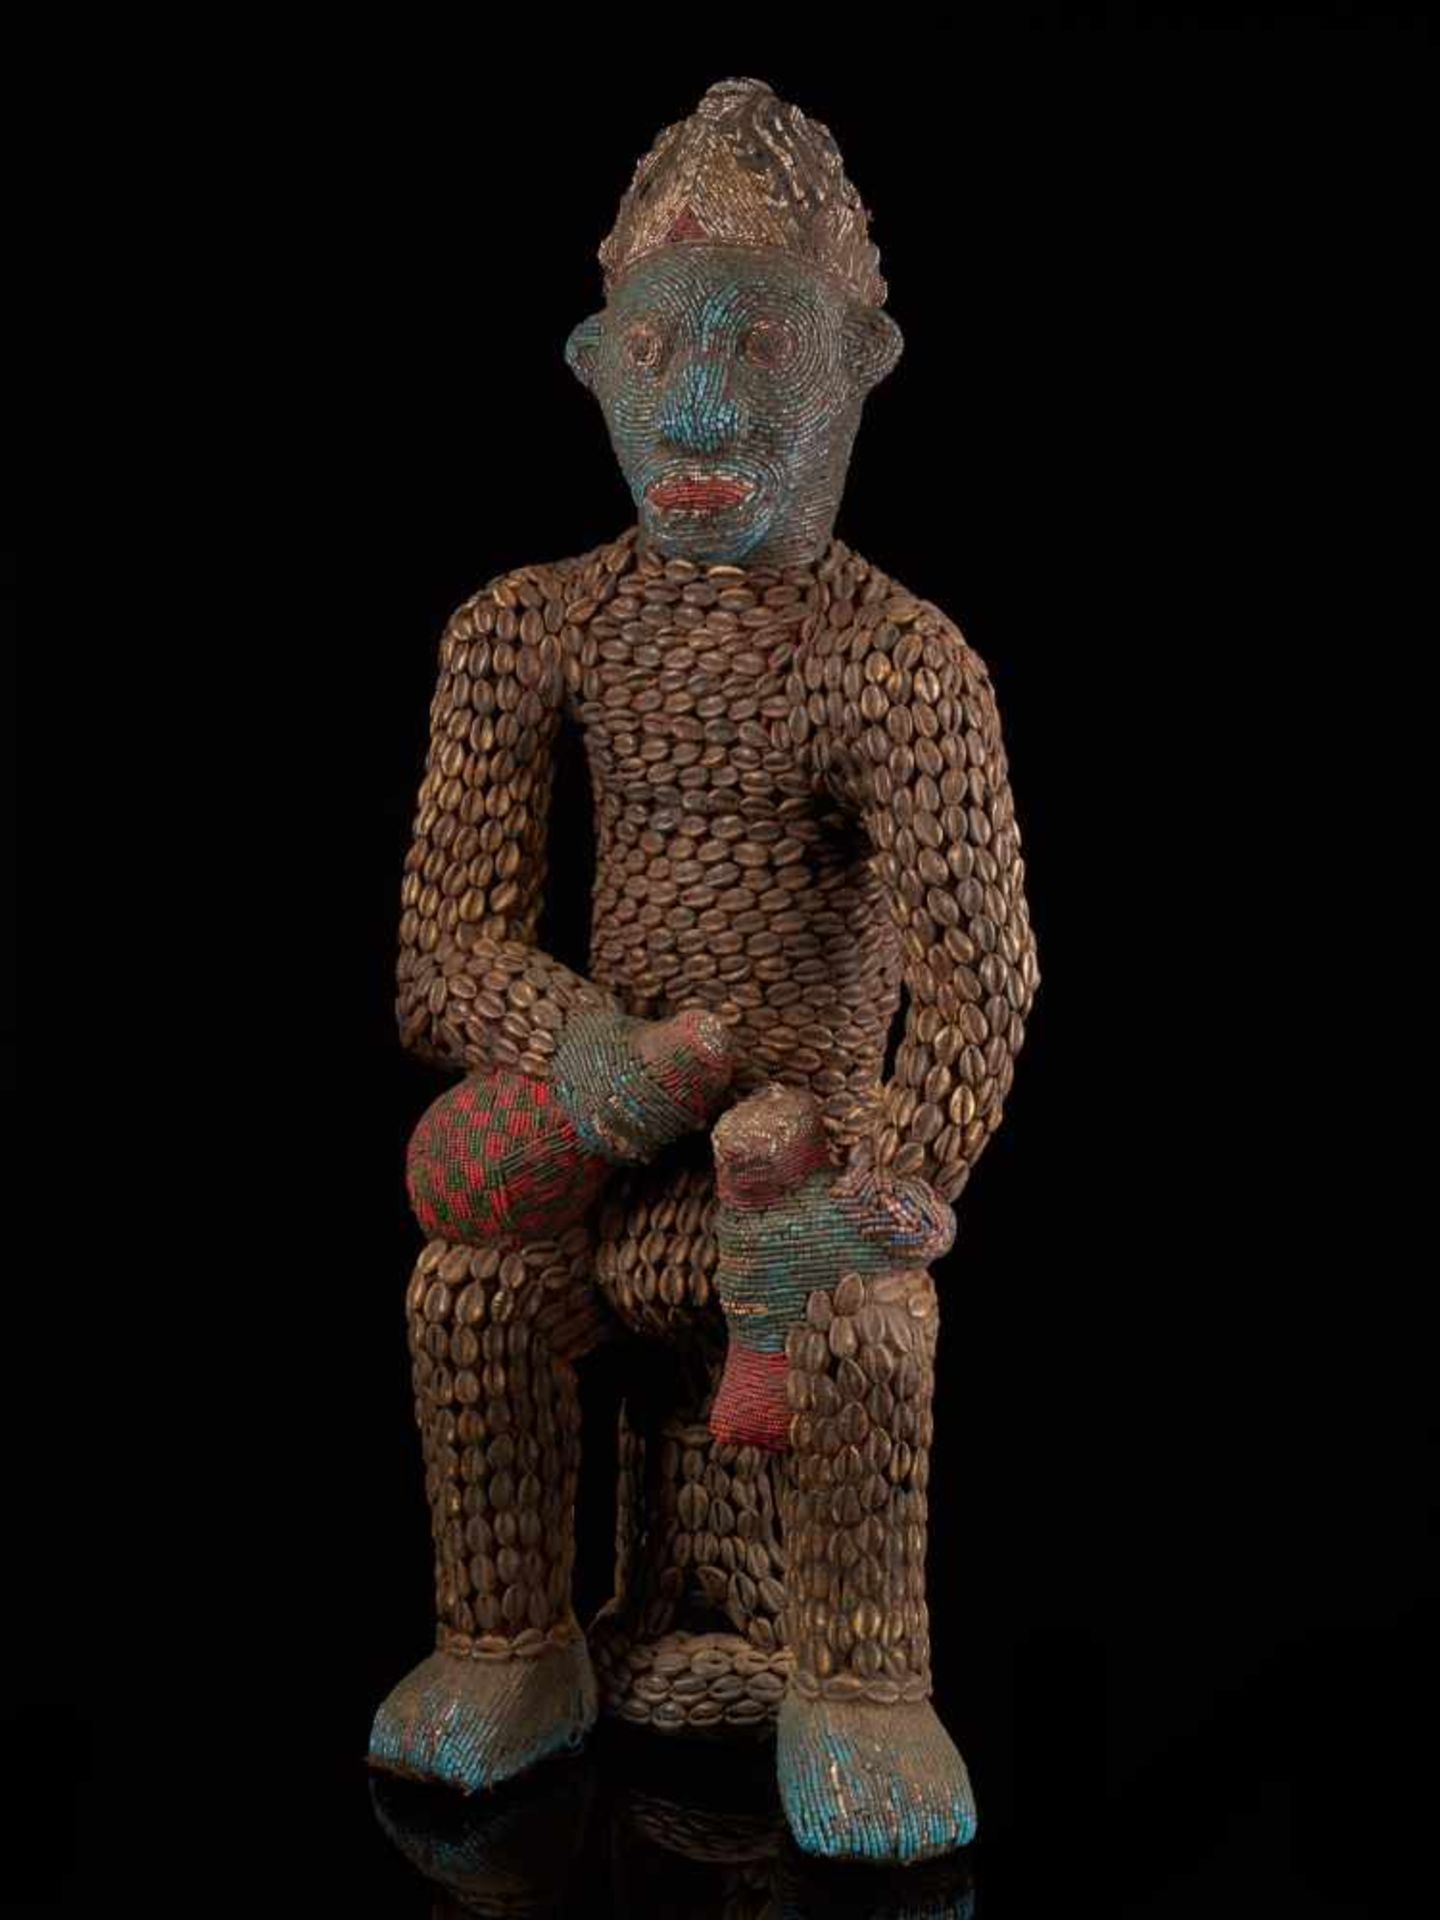 Beaded Royal Figure Holding Wine Vessel - Tribal ArtThis exquisite beaded figure of a man holding